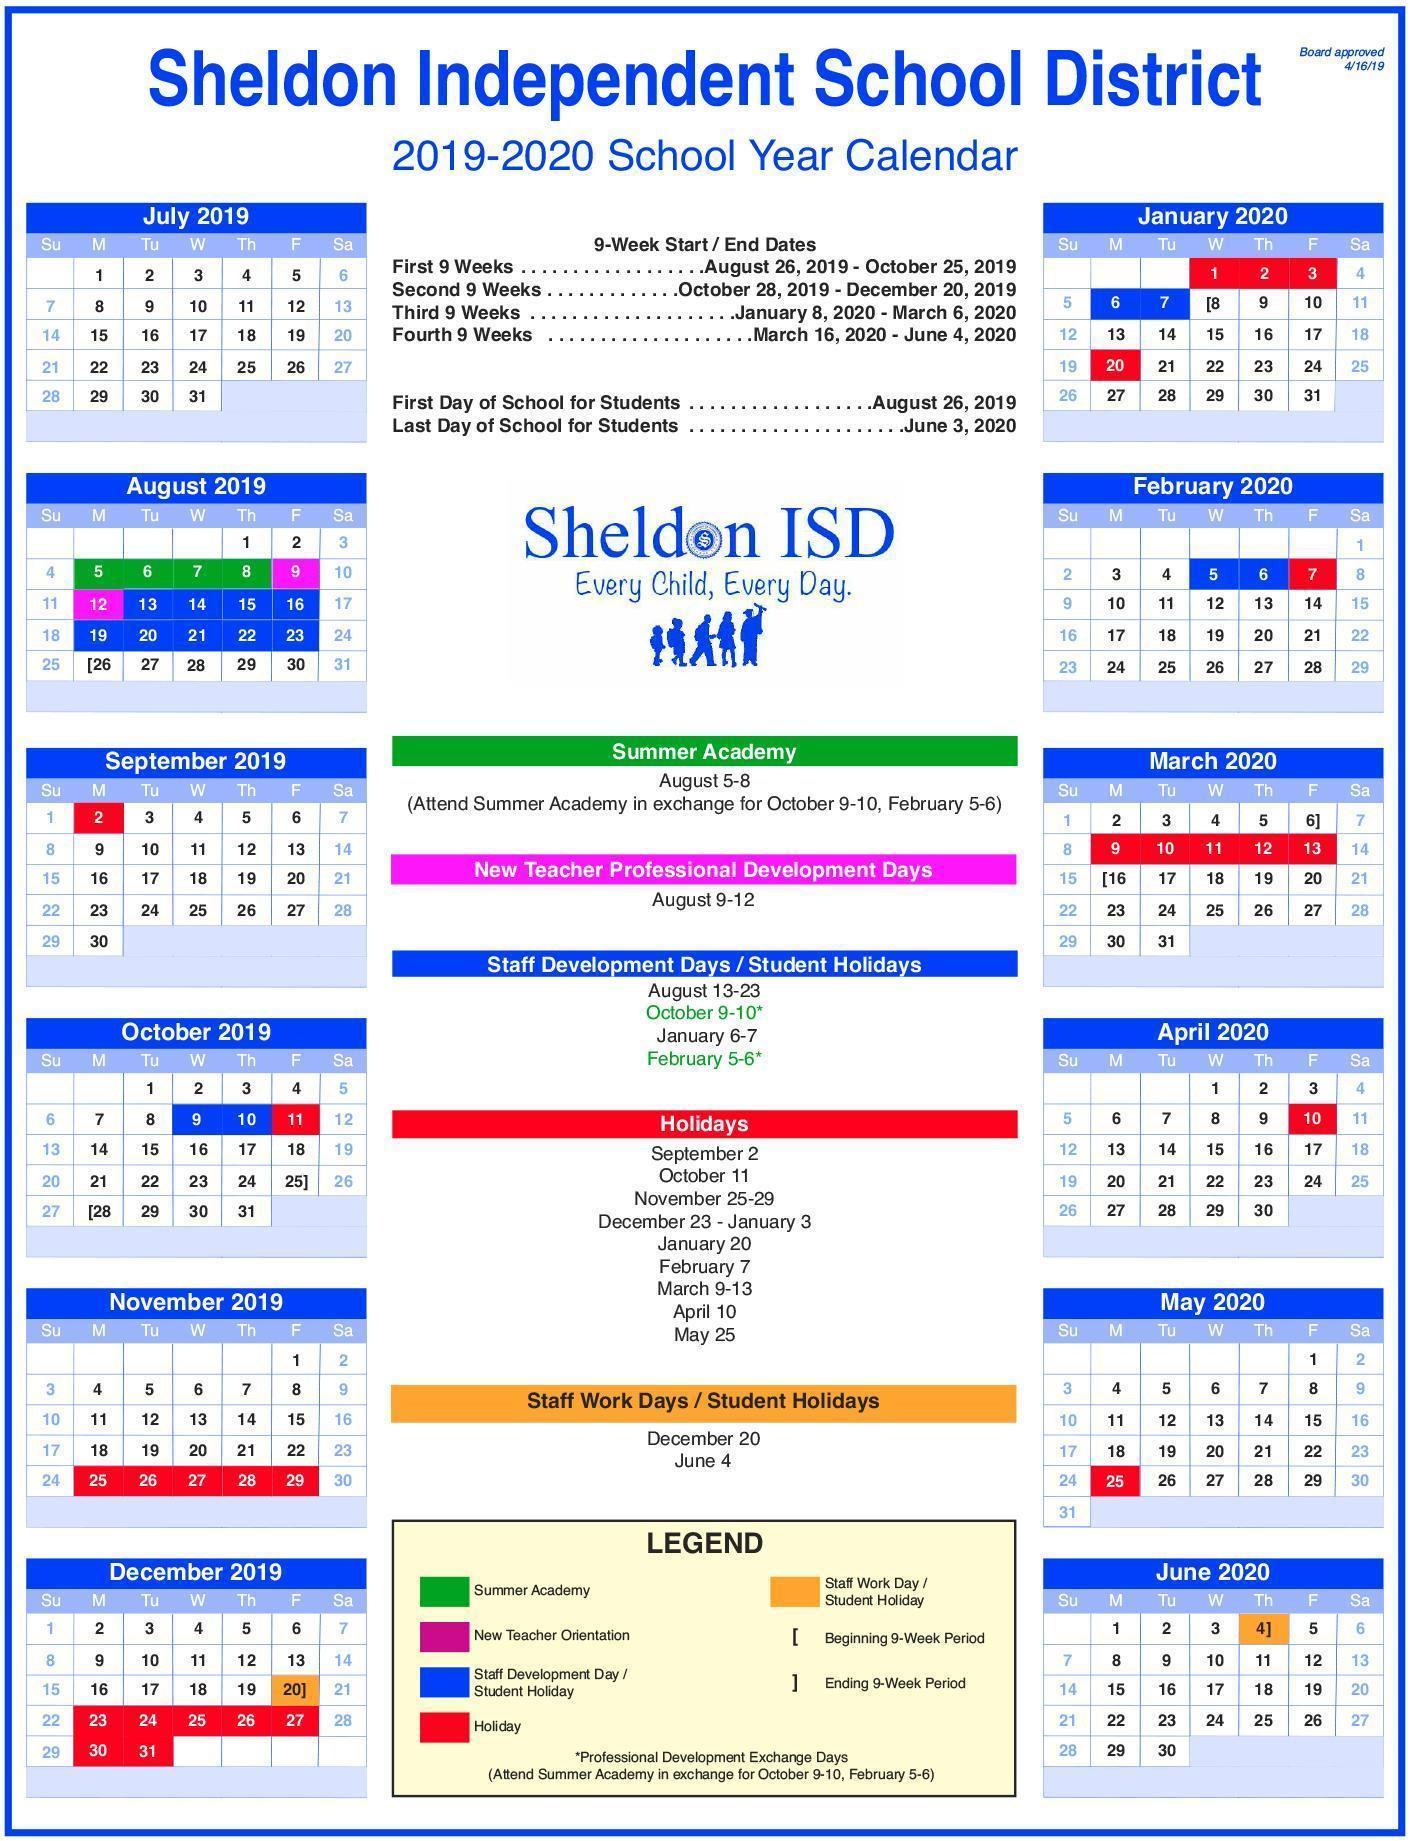 Sheldon ISD School Year Calendar Image